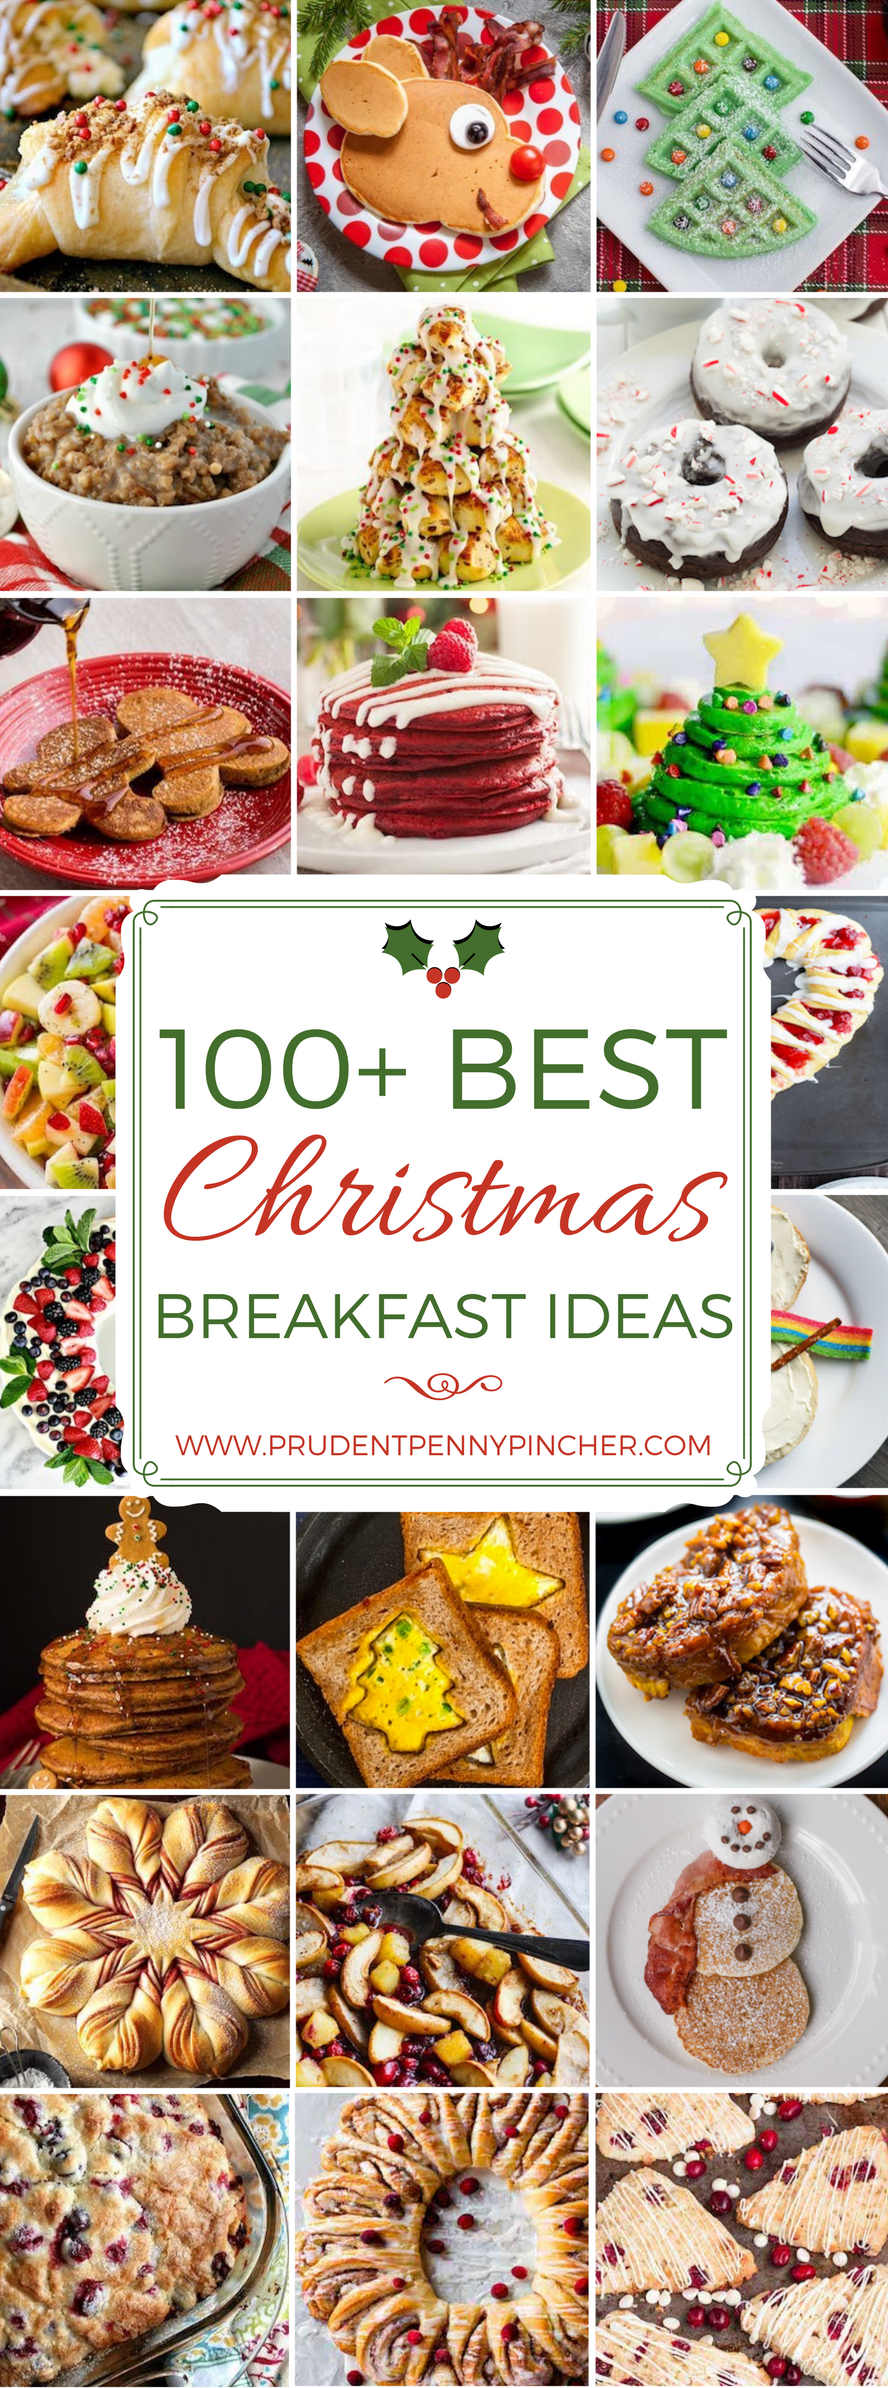 start christmas morning off right with these festive and delicious christmas breakfast recipes from make ahead recipes and breakfast casseroles to the - Best Christmas Breakfast